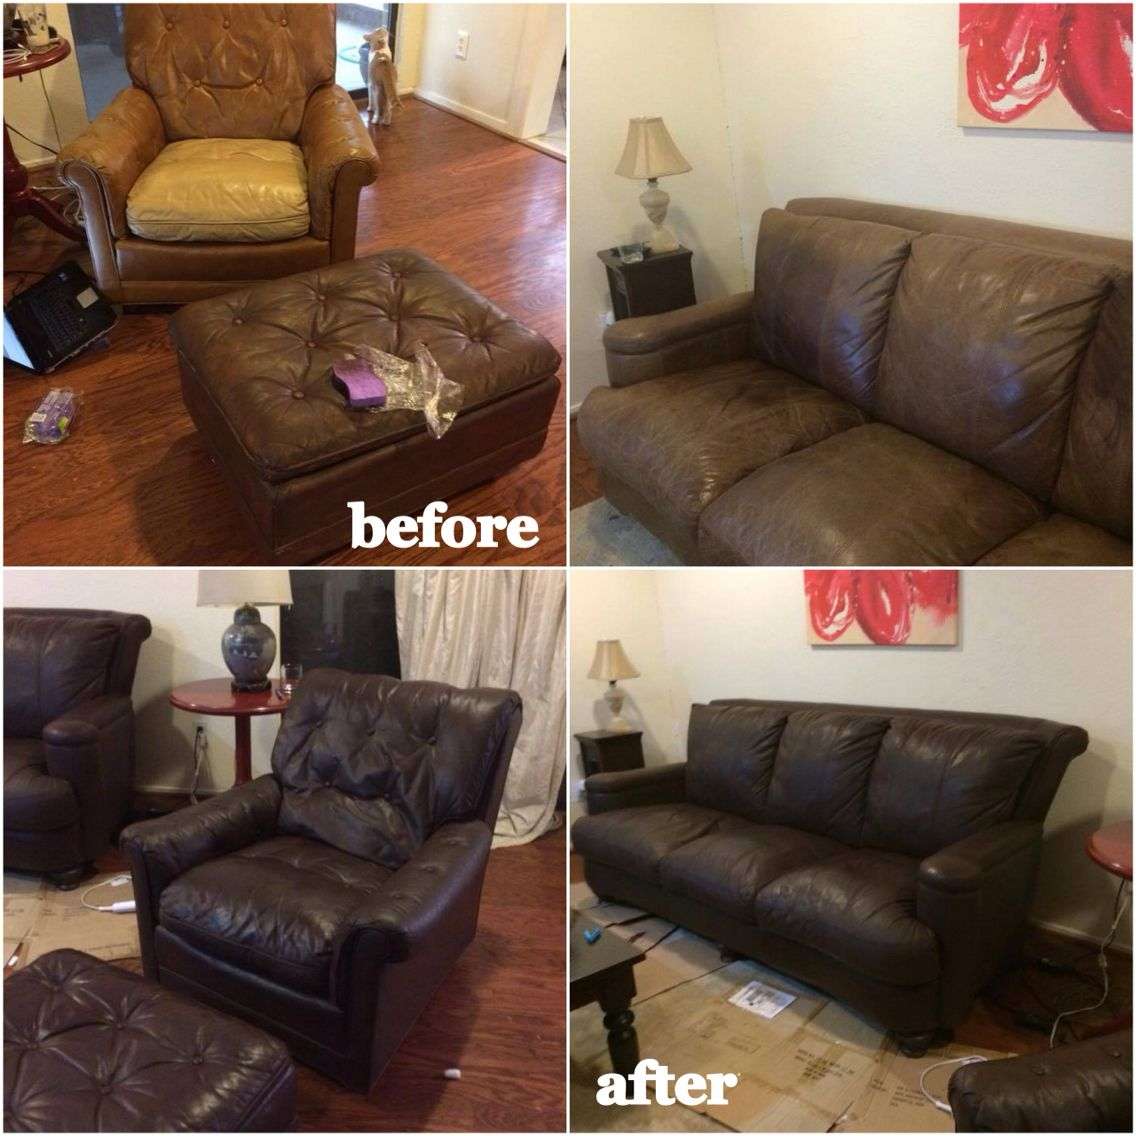 Marvelous We Were Looking For Decent Furniture For Our College Cuties And Their  Roommates. We Found